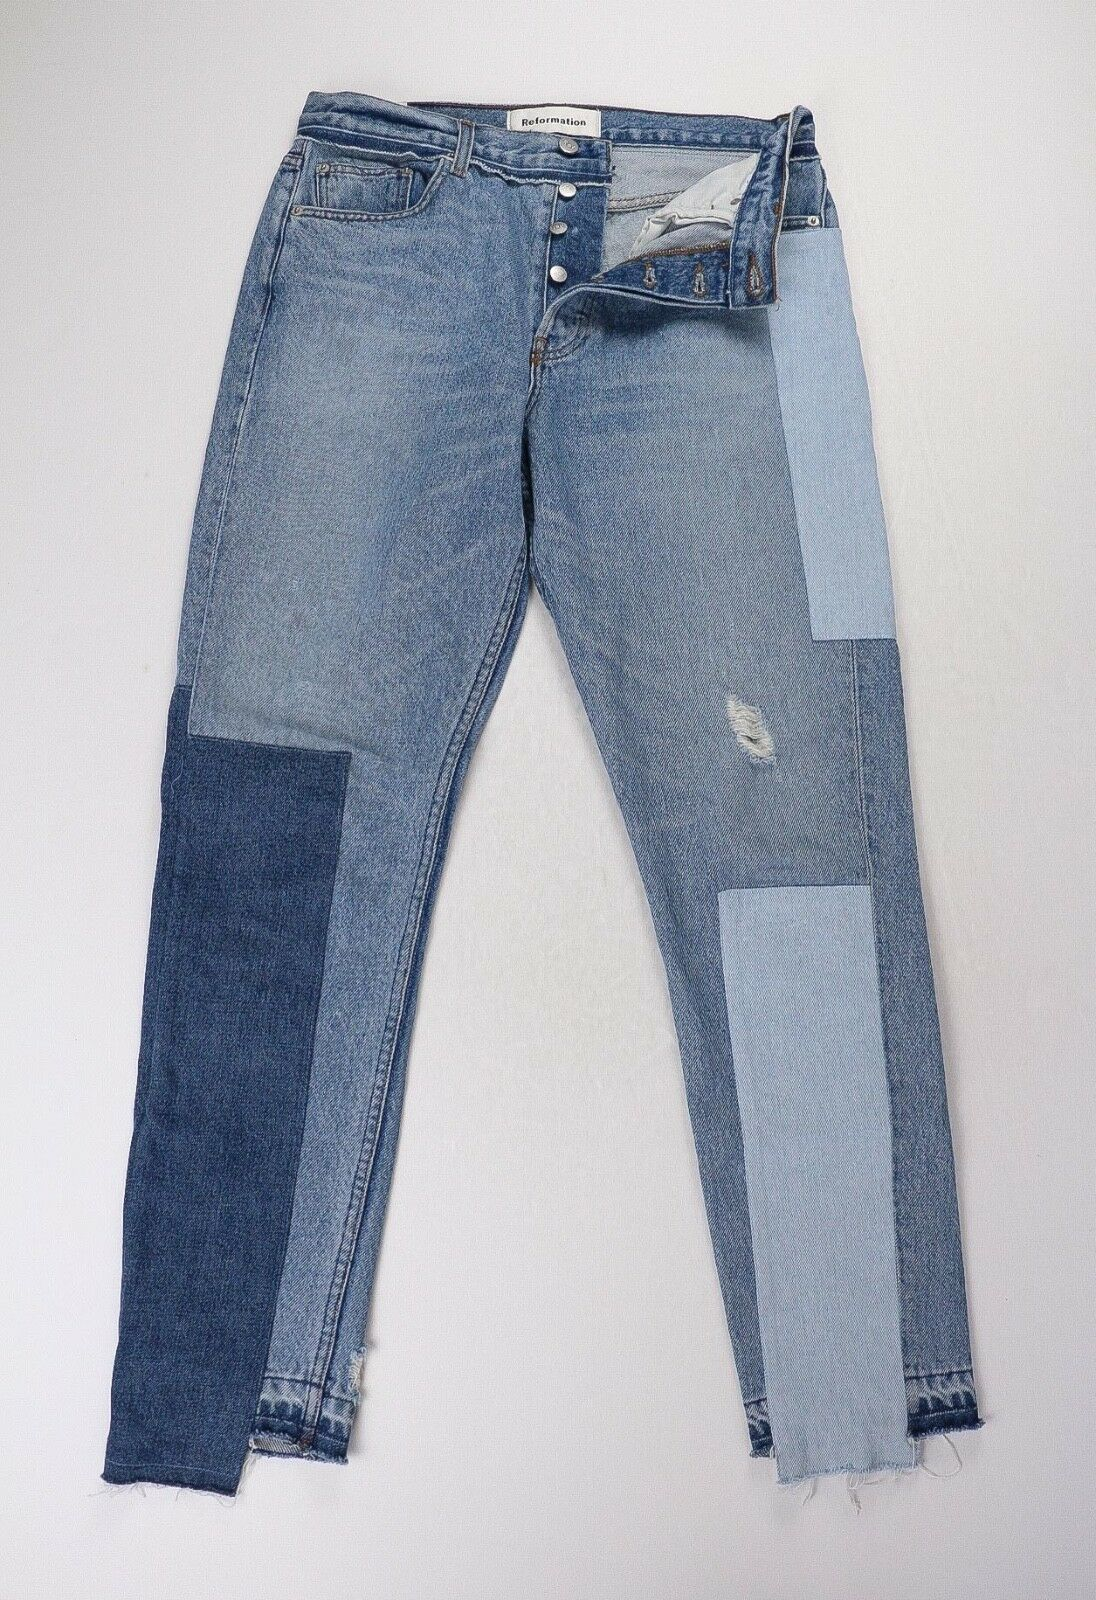 Reformation Skinny Patch Torres Wash Denim Jeans 29 x 29 SOLD OUT